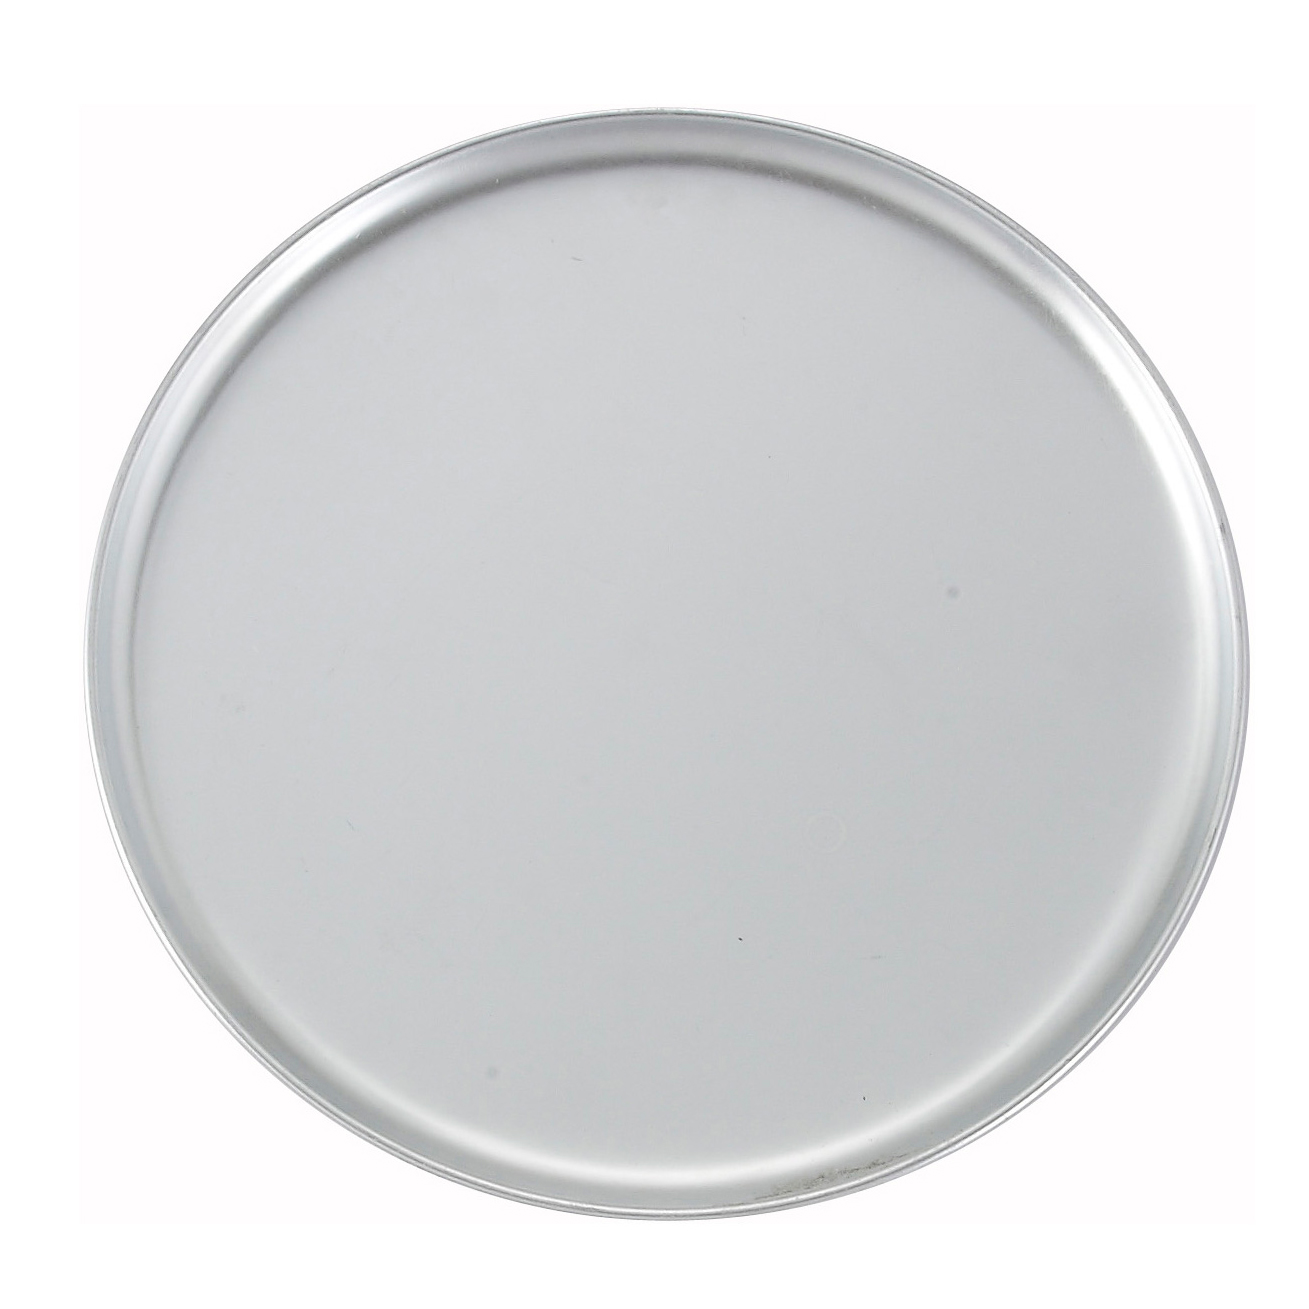 Winco APZC-14 pizza pan